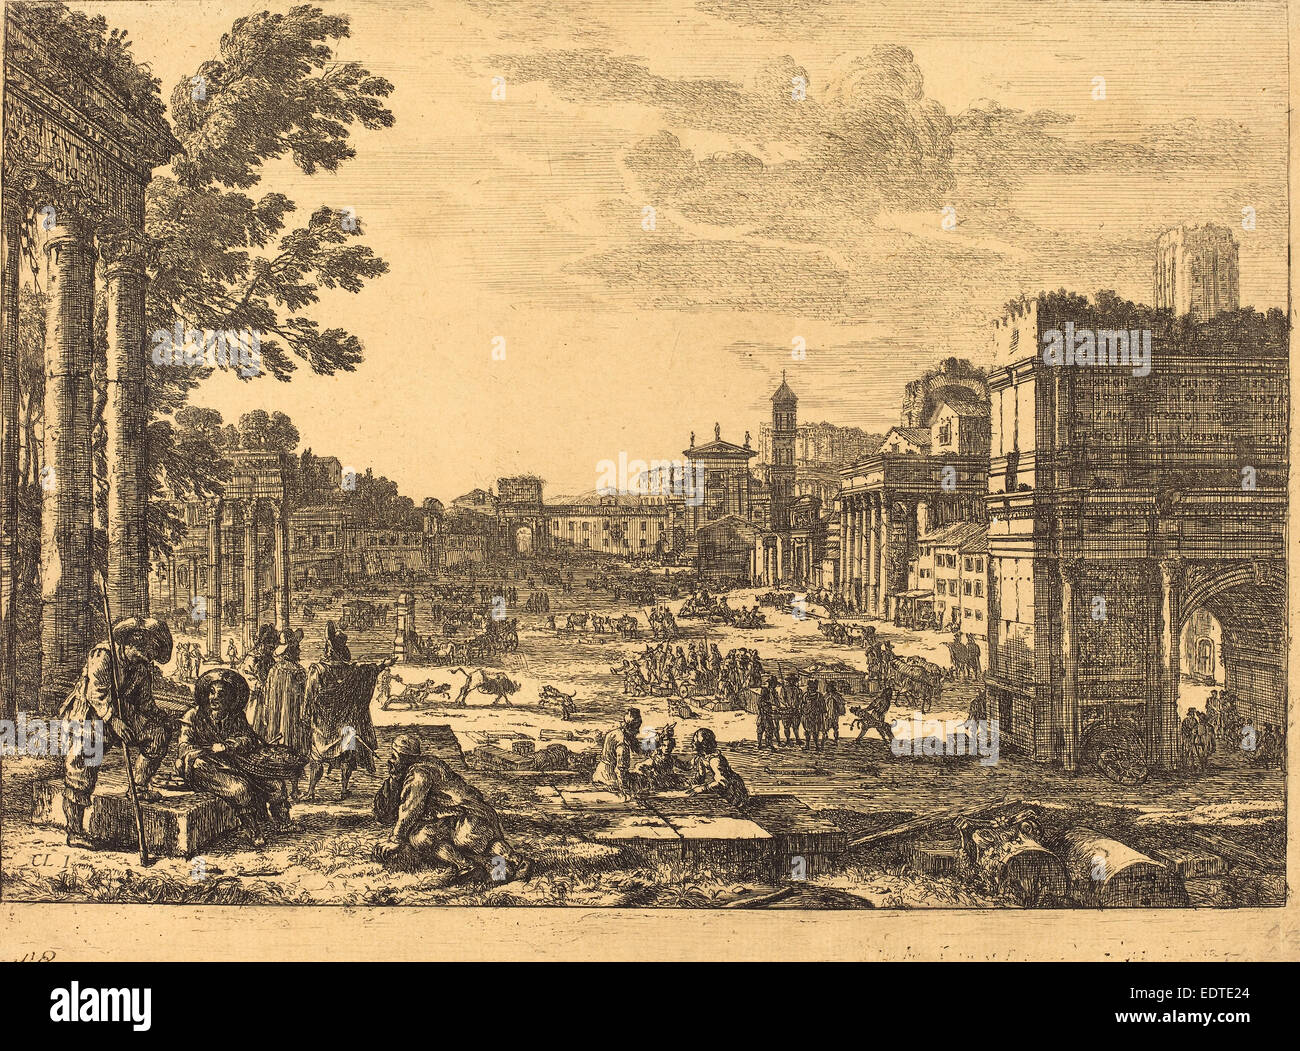 Claude Lorrain (French, 1604-1605 - 1682), The Roman Forum (Le Campo Vaccino), 1636, etching - Stock Image